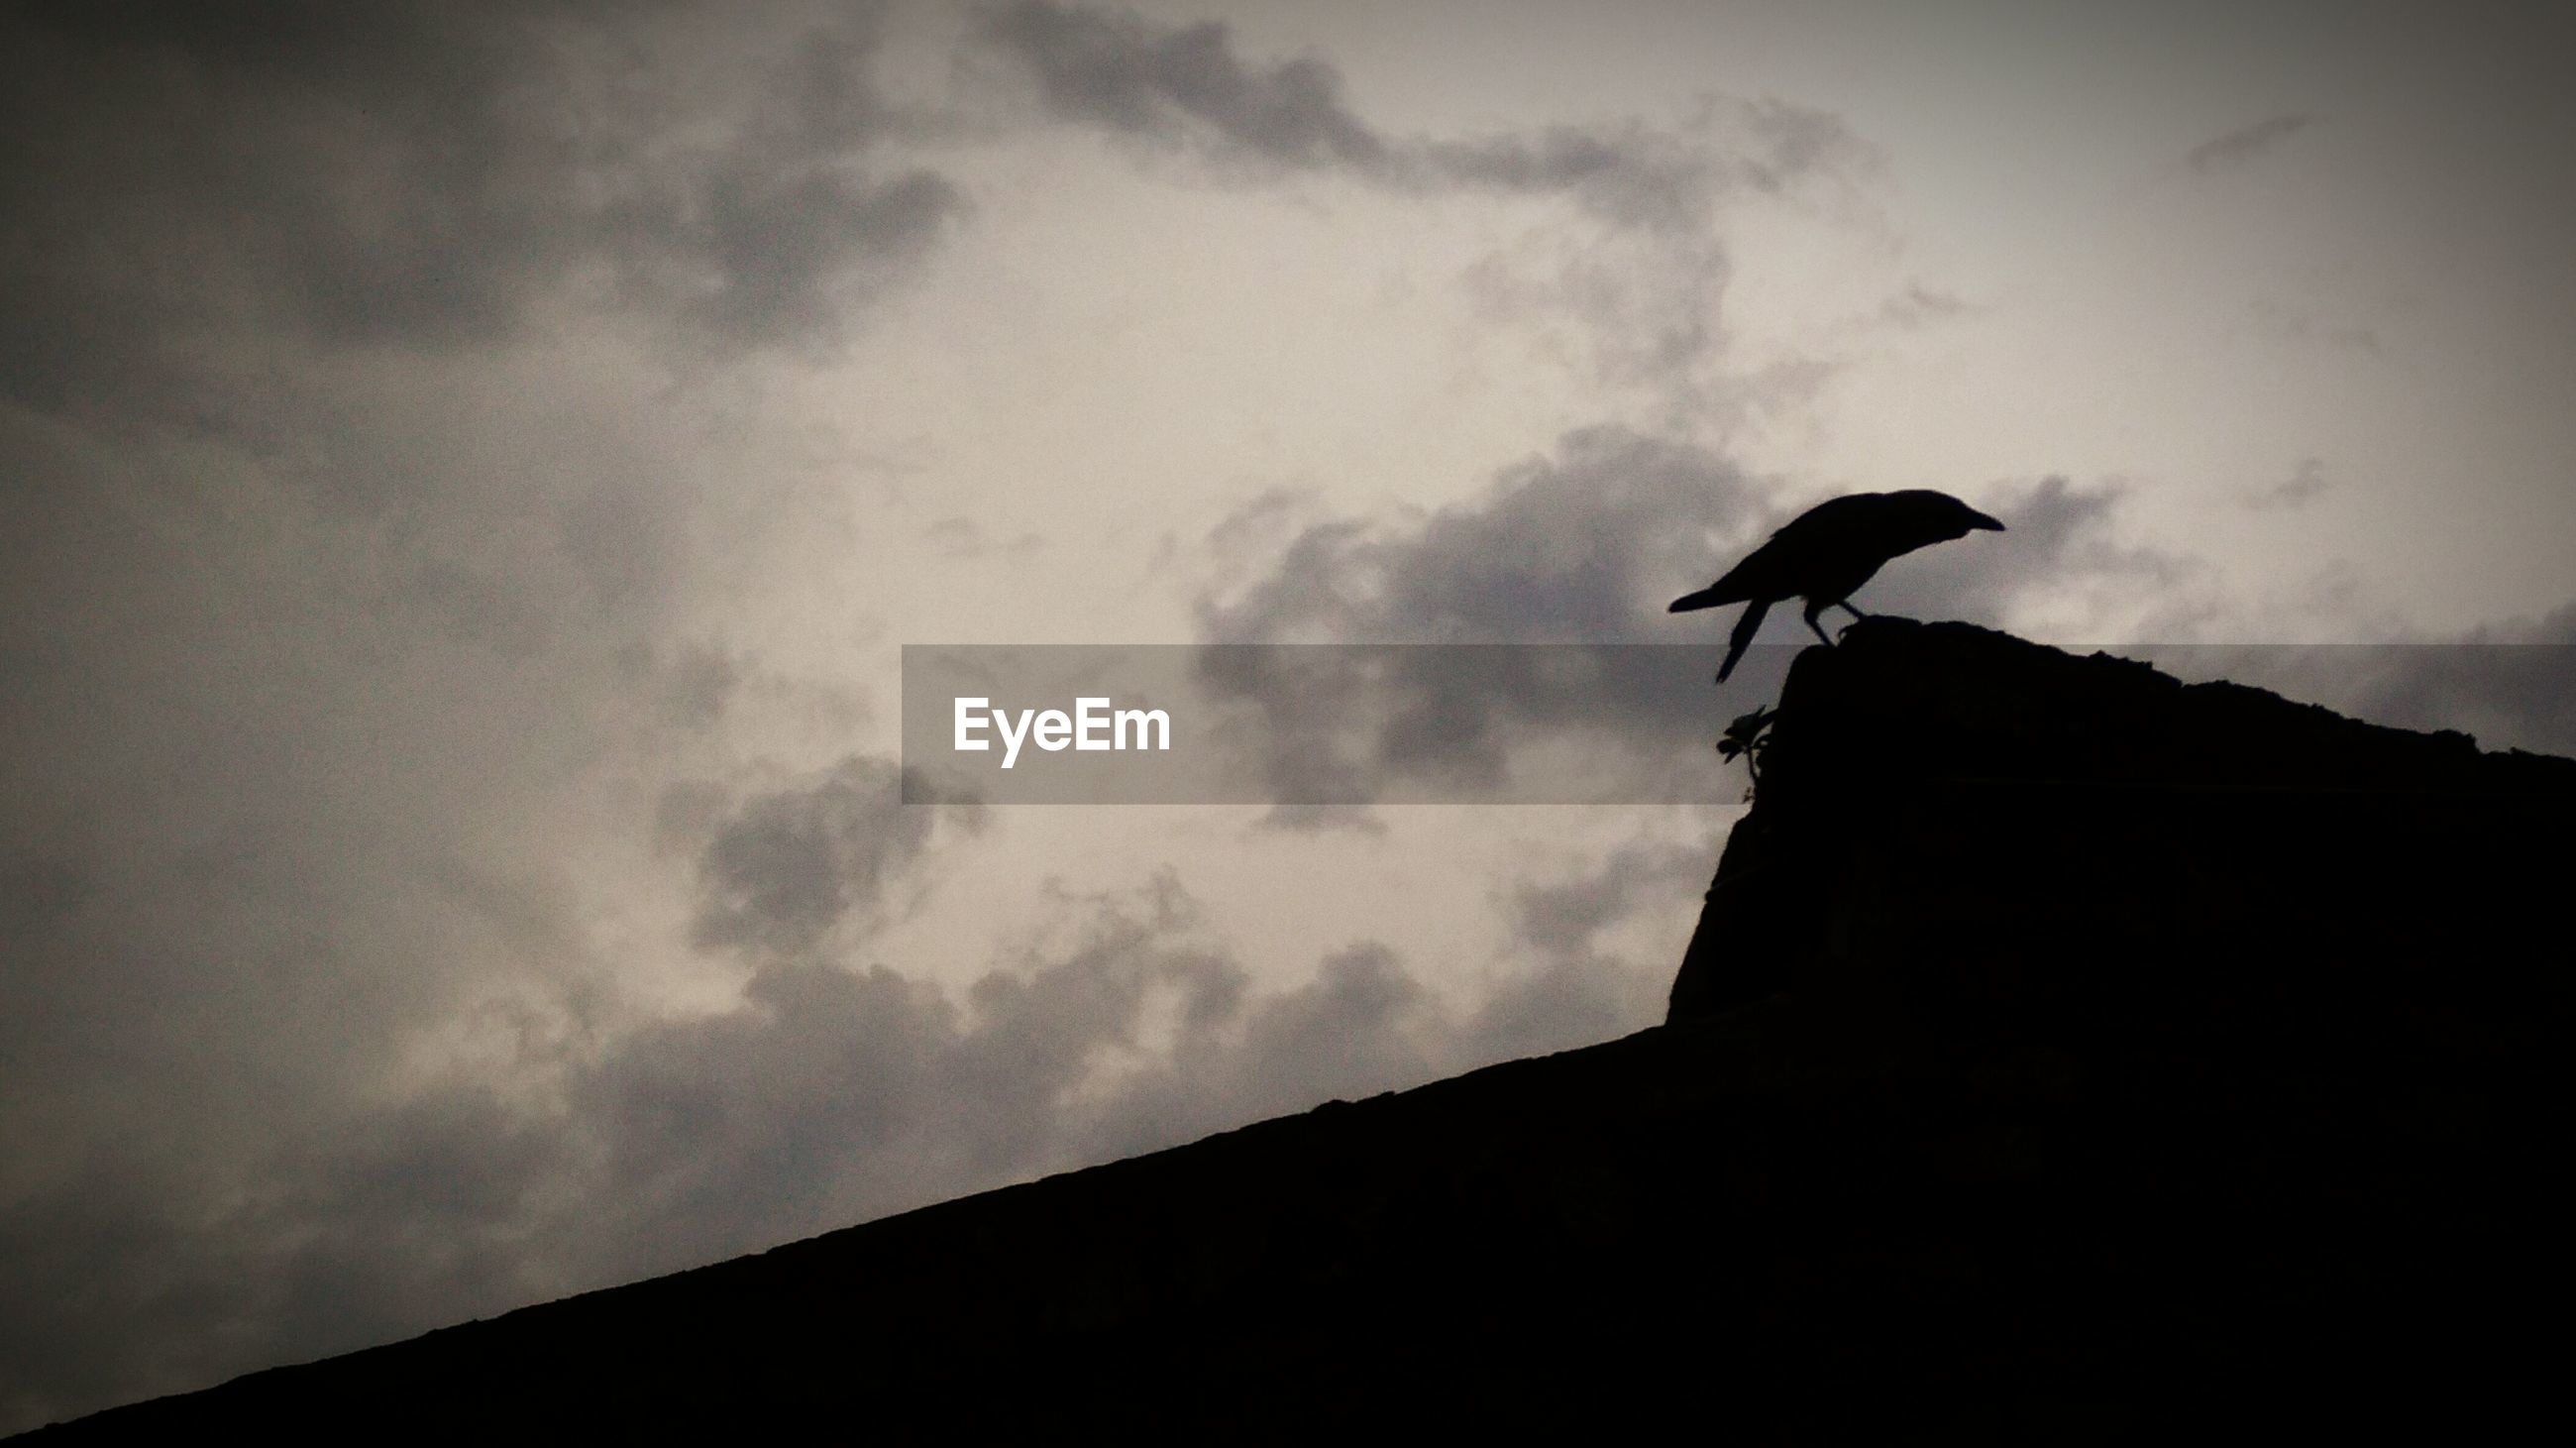 Low angle view of silhouette bird on house roof